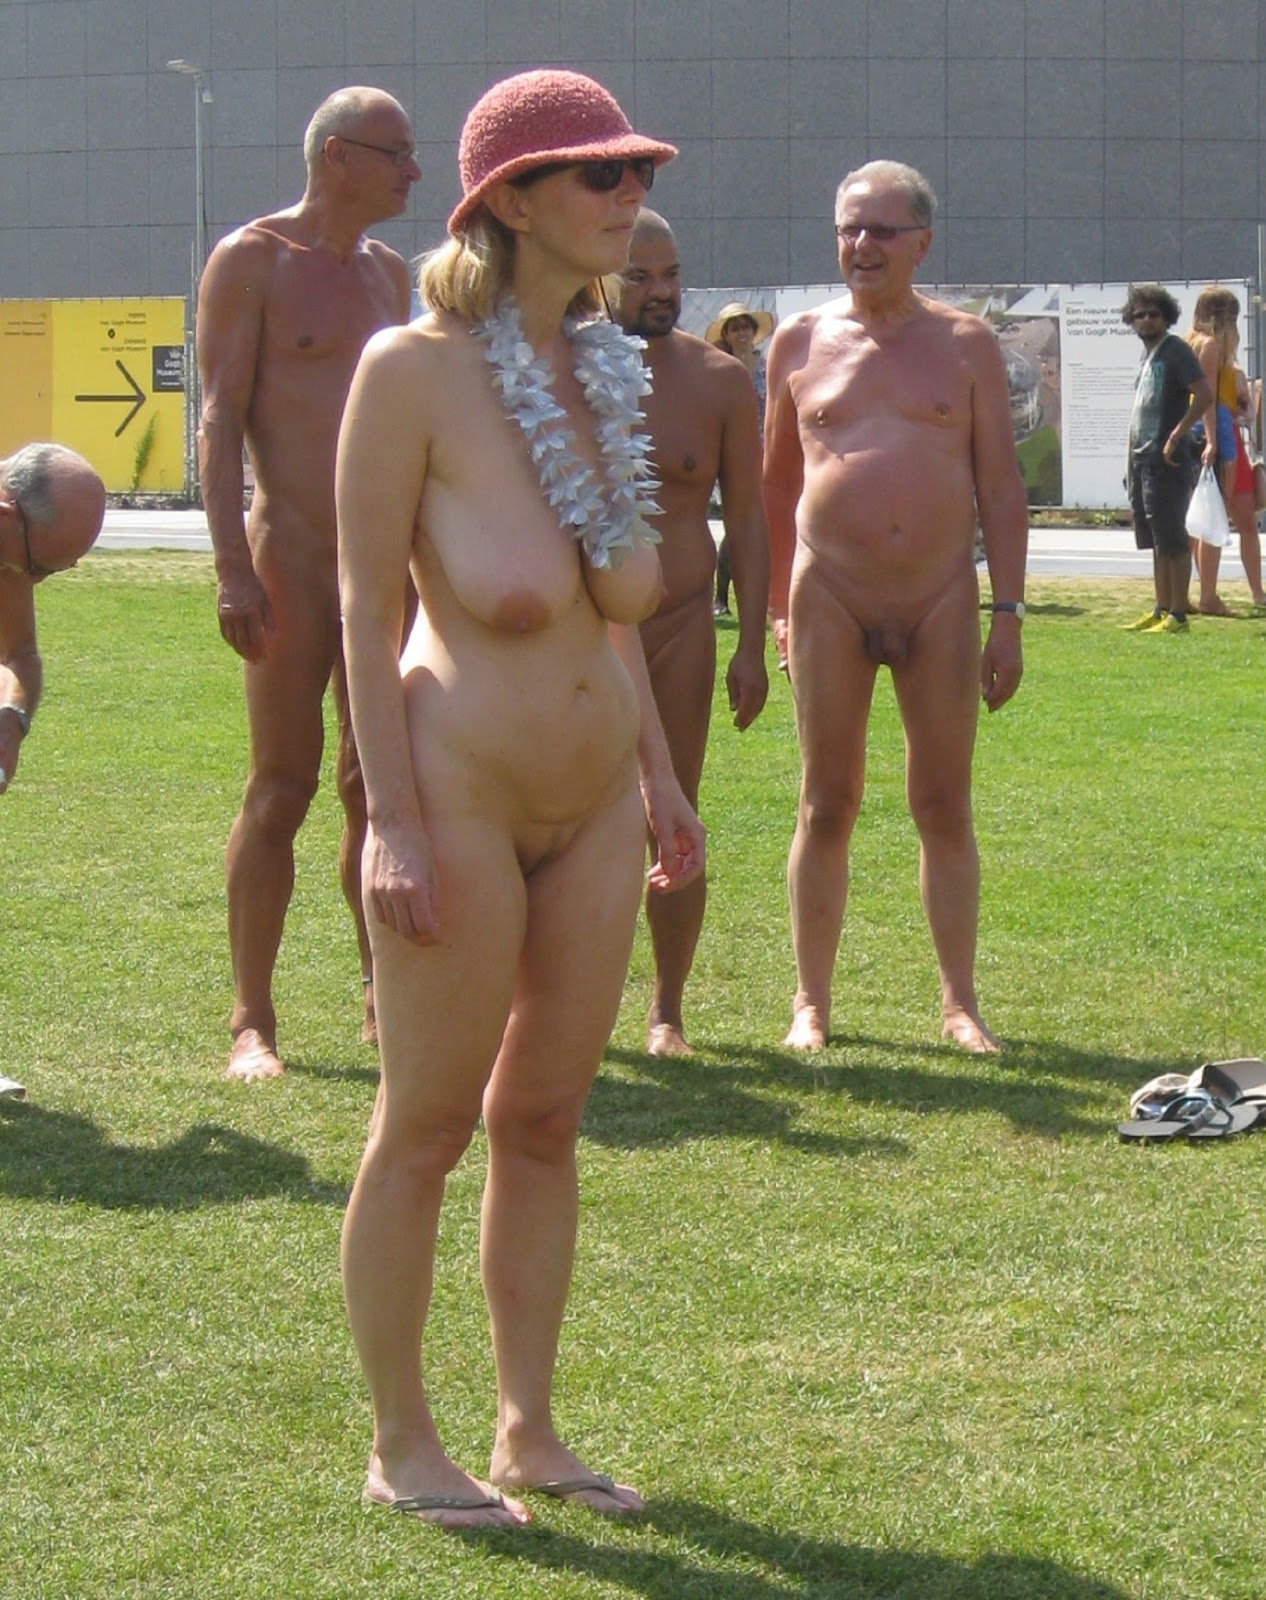 public nudity project amsterdam netherlands